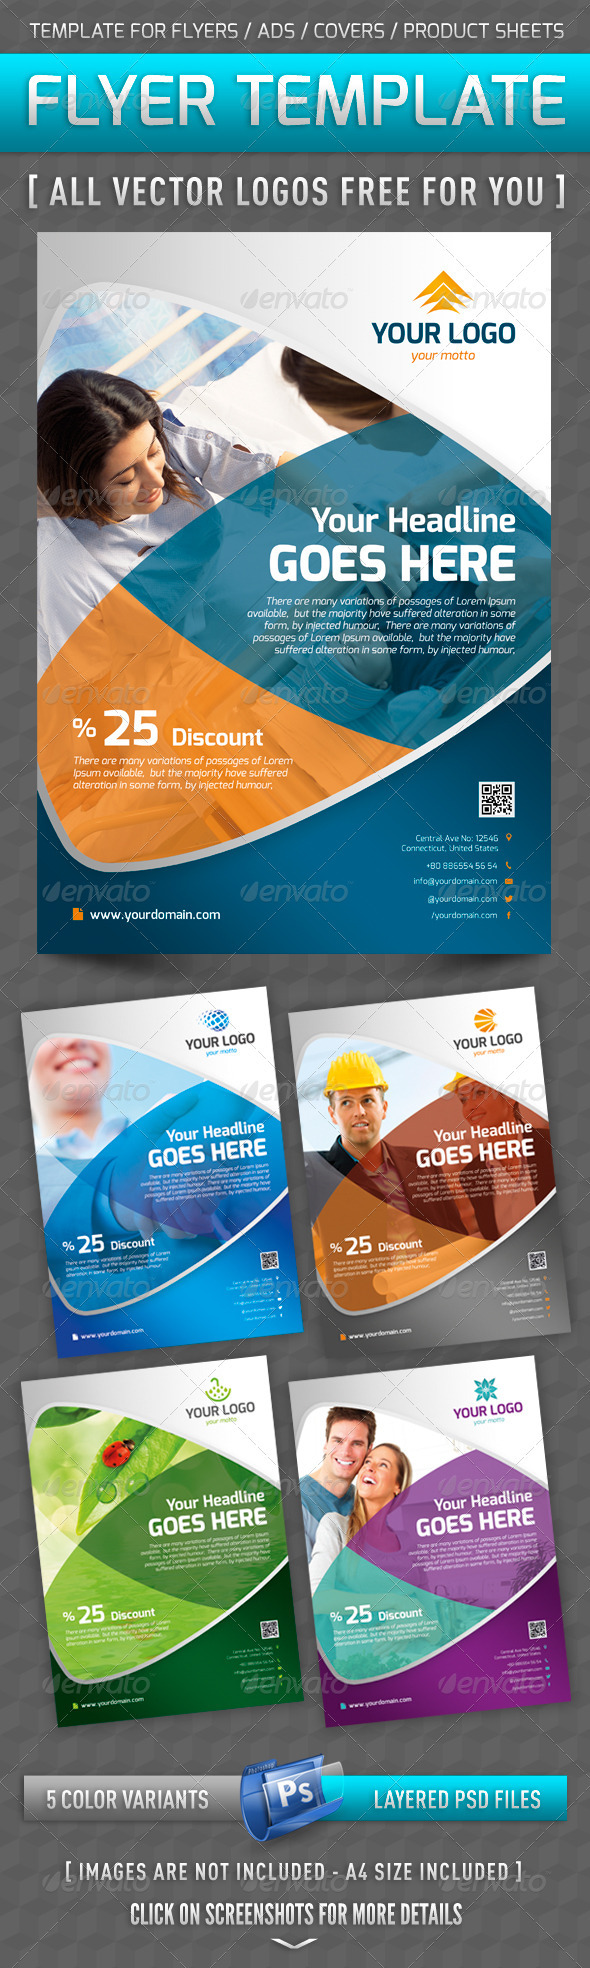 Flyer Template Graphicriver